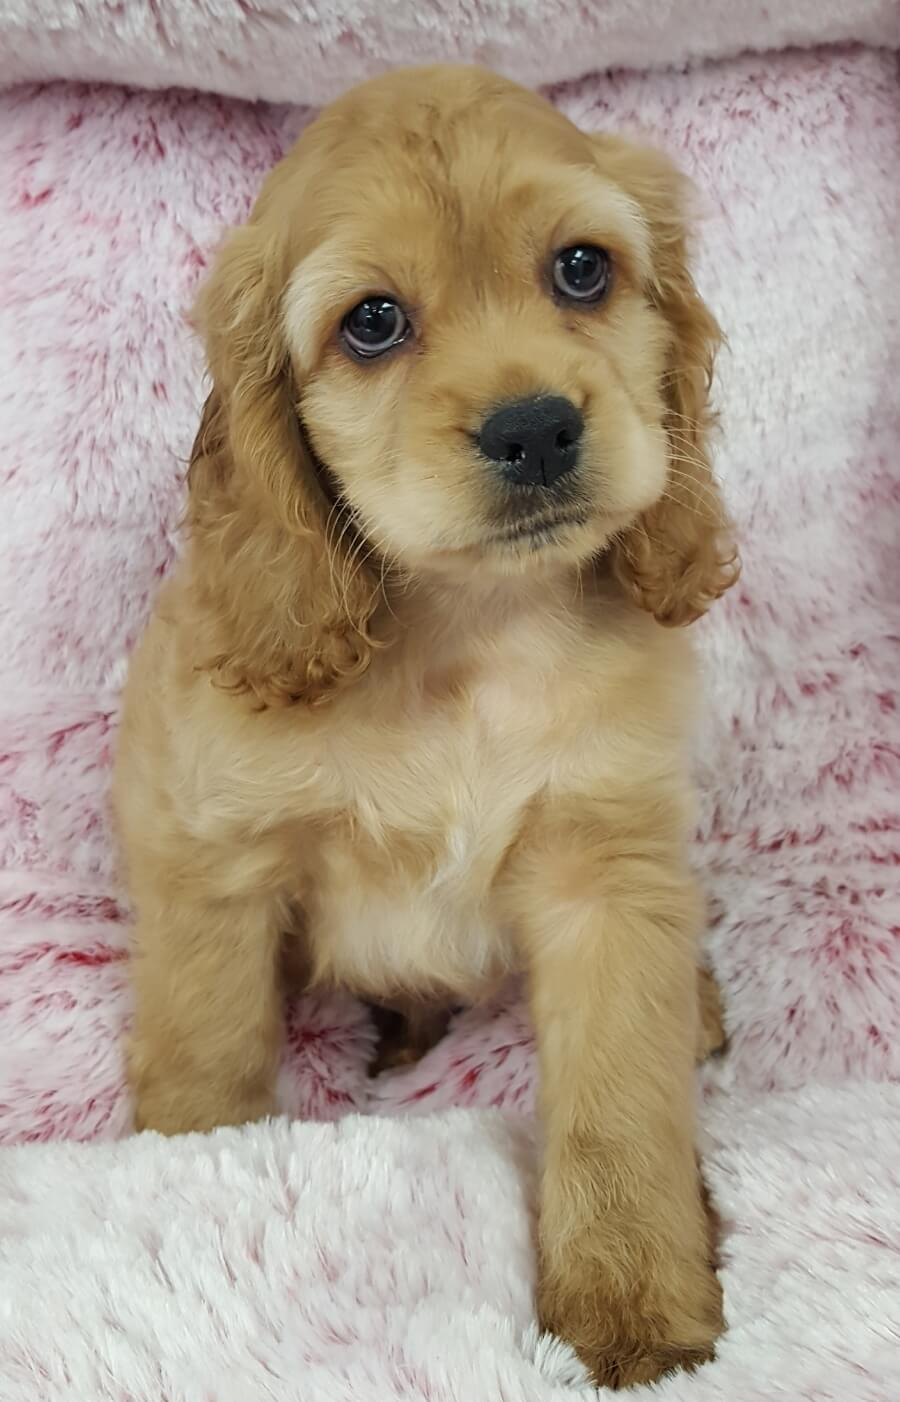 <small><del>Cocker Spaniel</del></small><br />Happy Cocker Spaniel